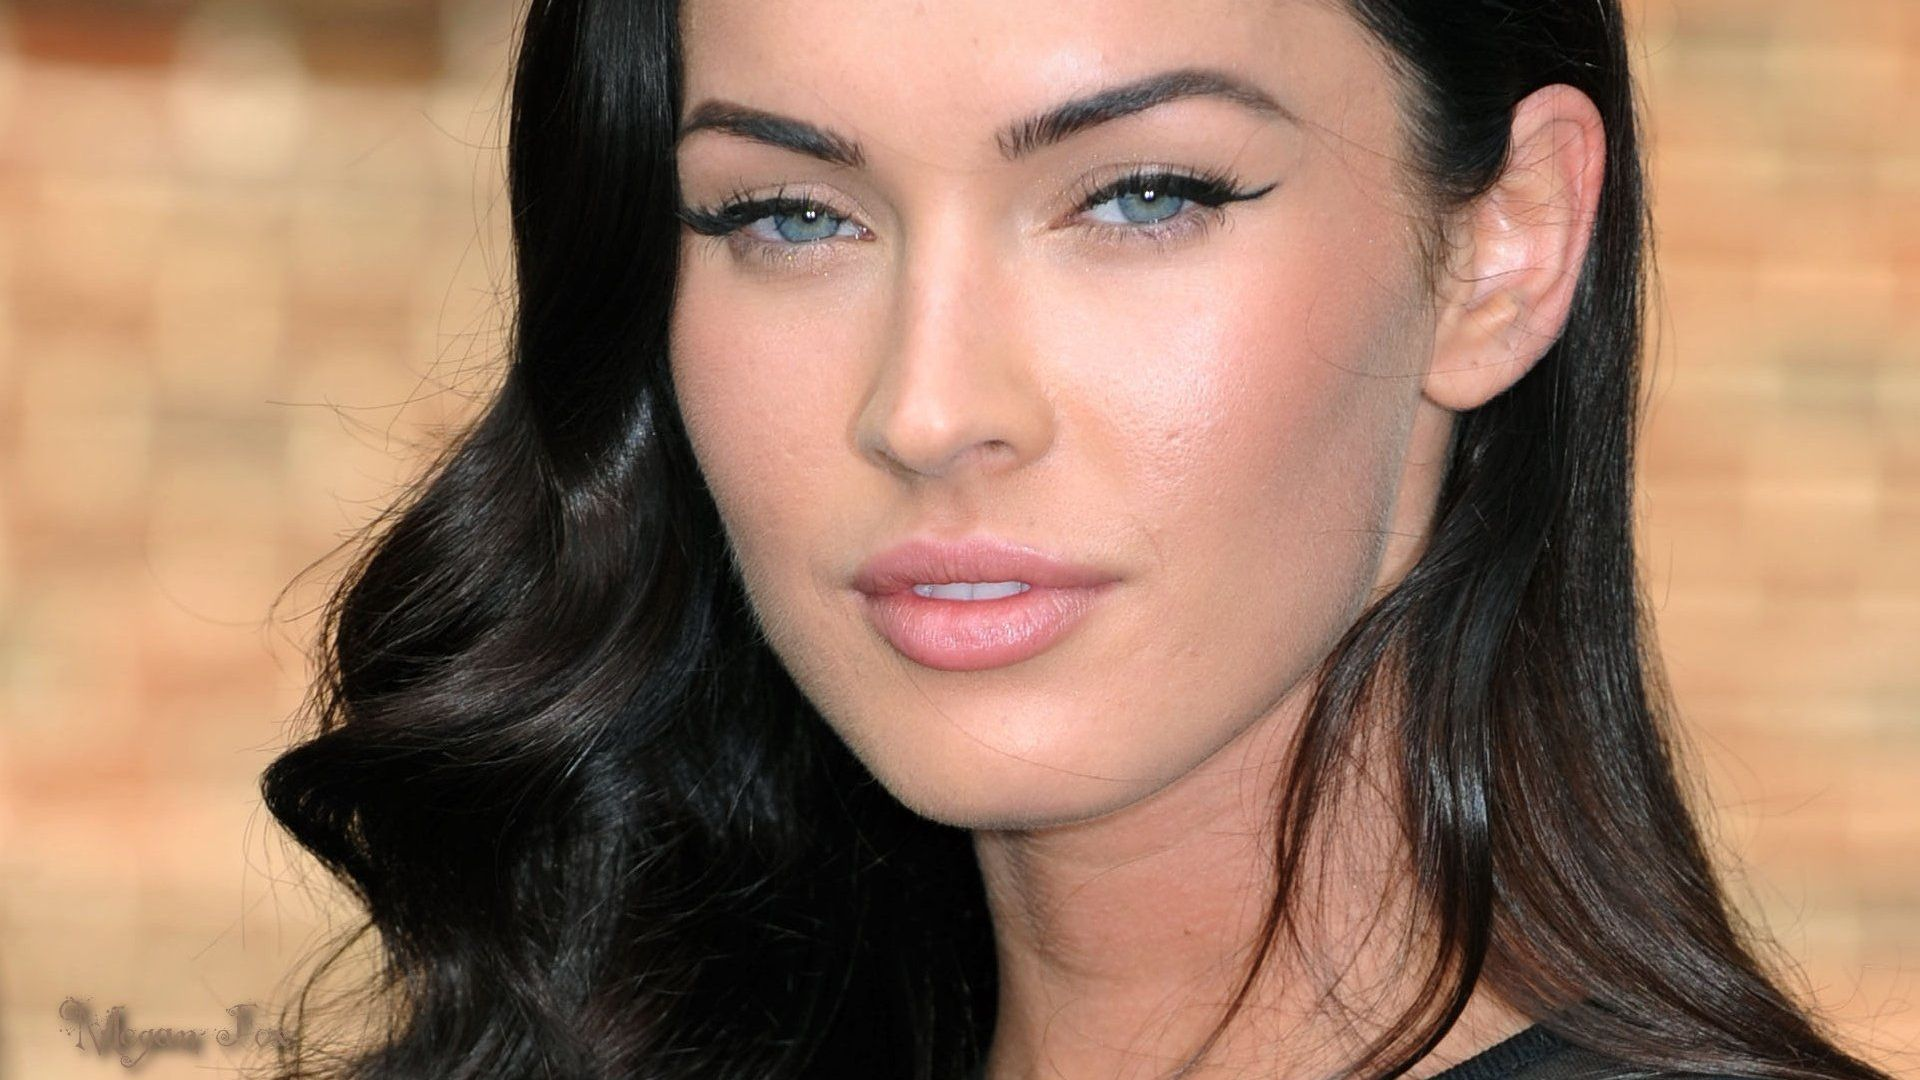 Megan Fox Hd Wallpapers 1080P wallpaper   414329 1920x1080